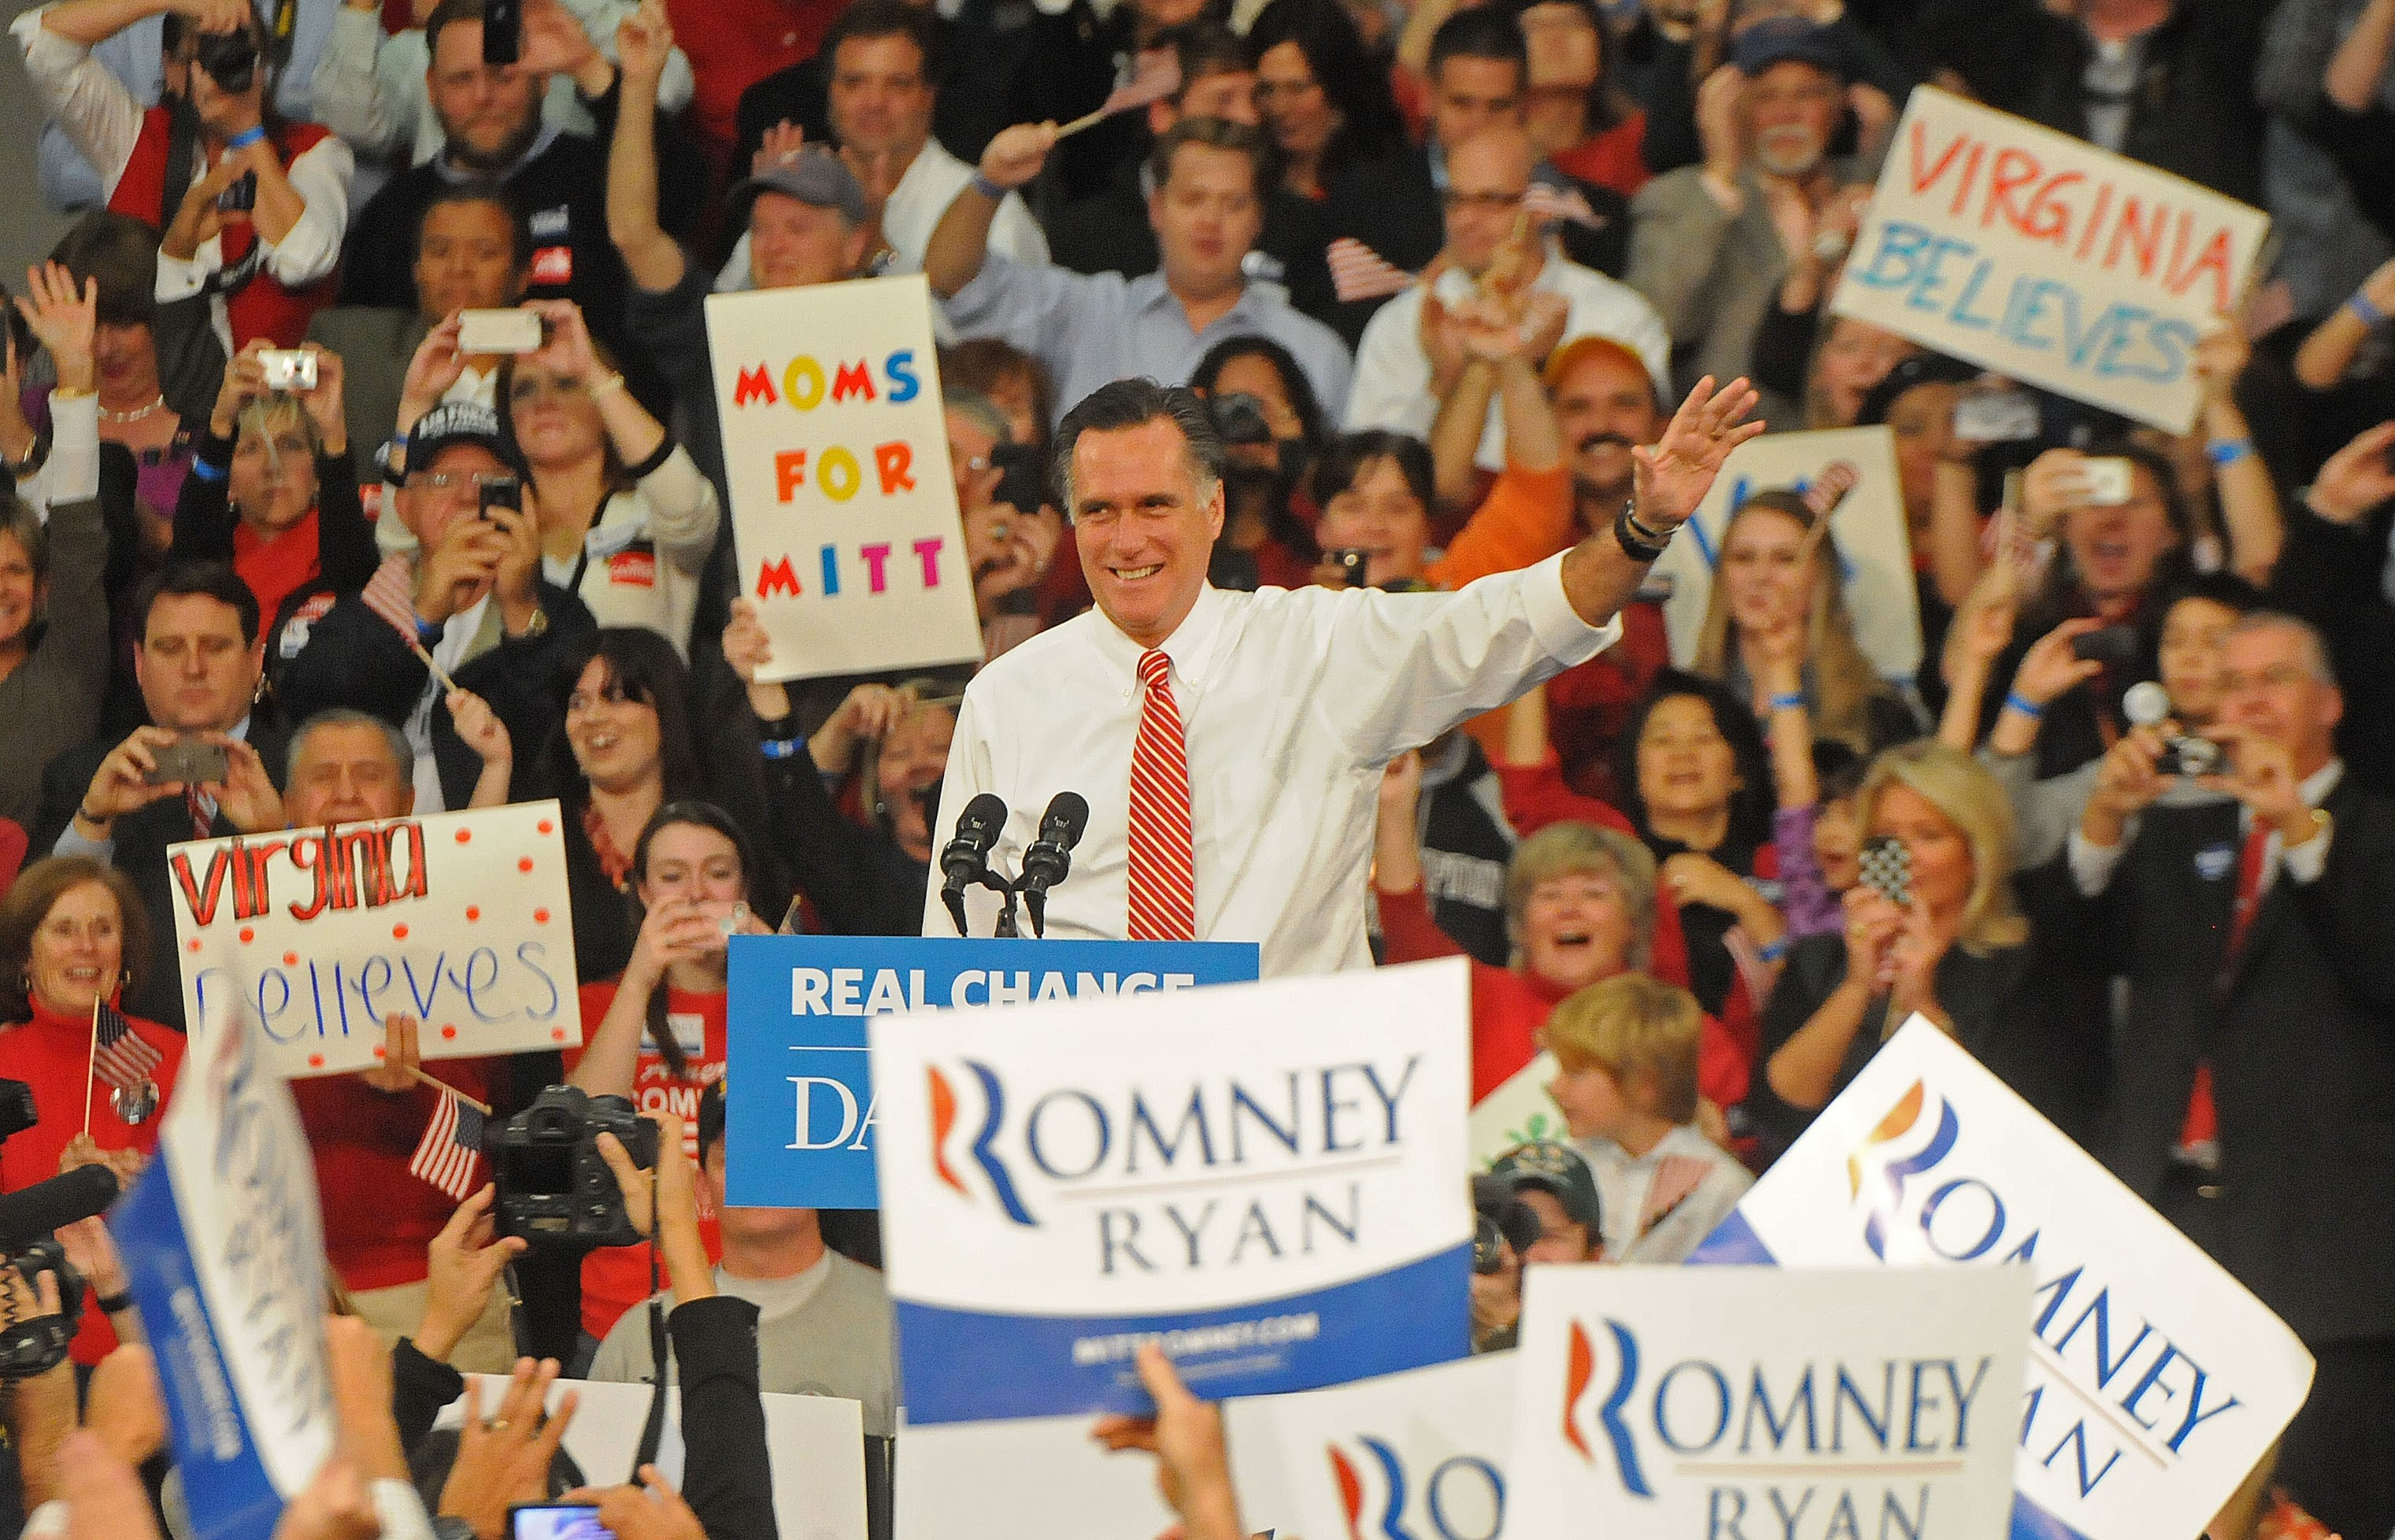 Mitt Romney roasts Obama for his barbecue-killing policies, and rallies the troops, in Caroline County Thursday afternoon. - BY SCOTT ELMQUIST